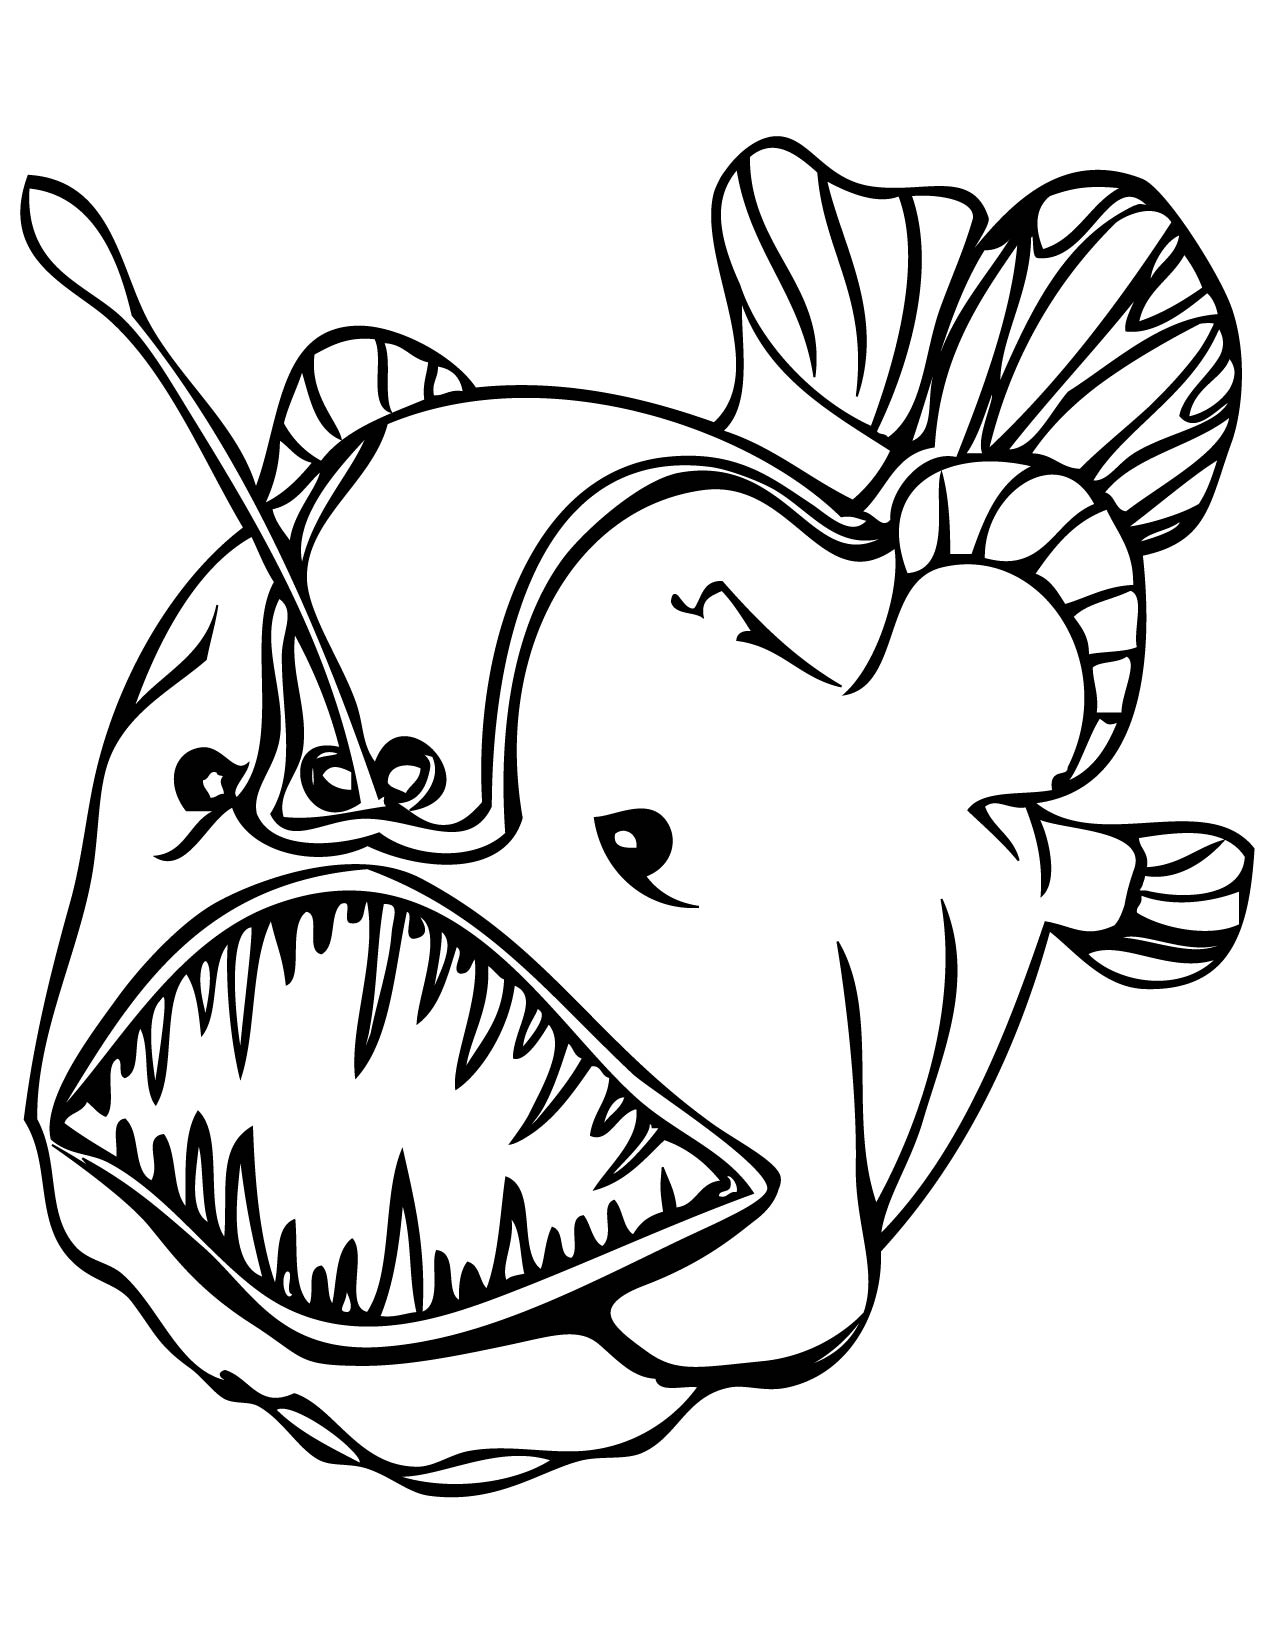 1275x1650 Angler Fish Coloring Page